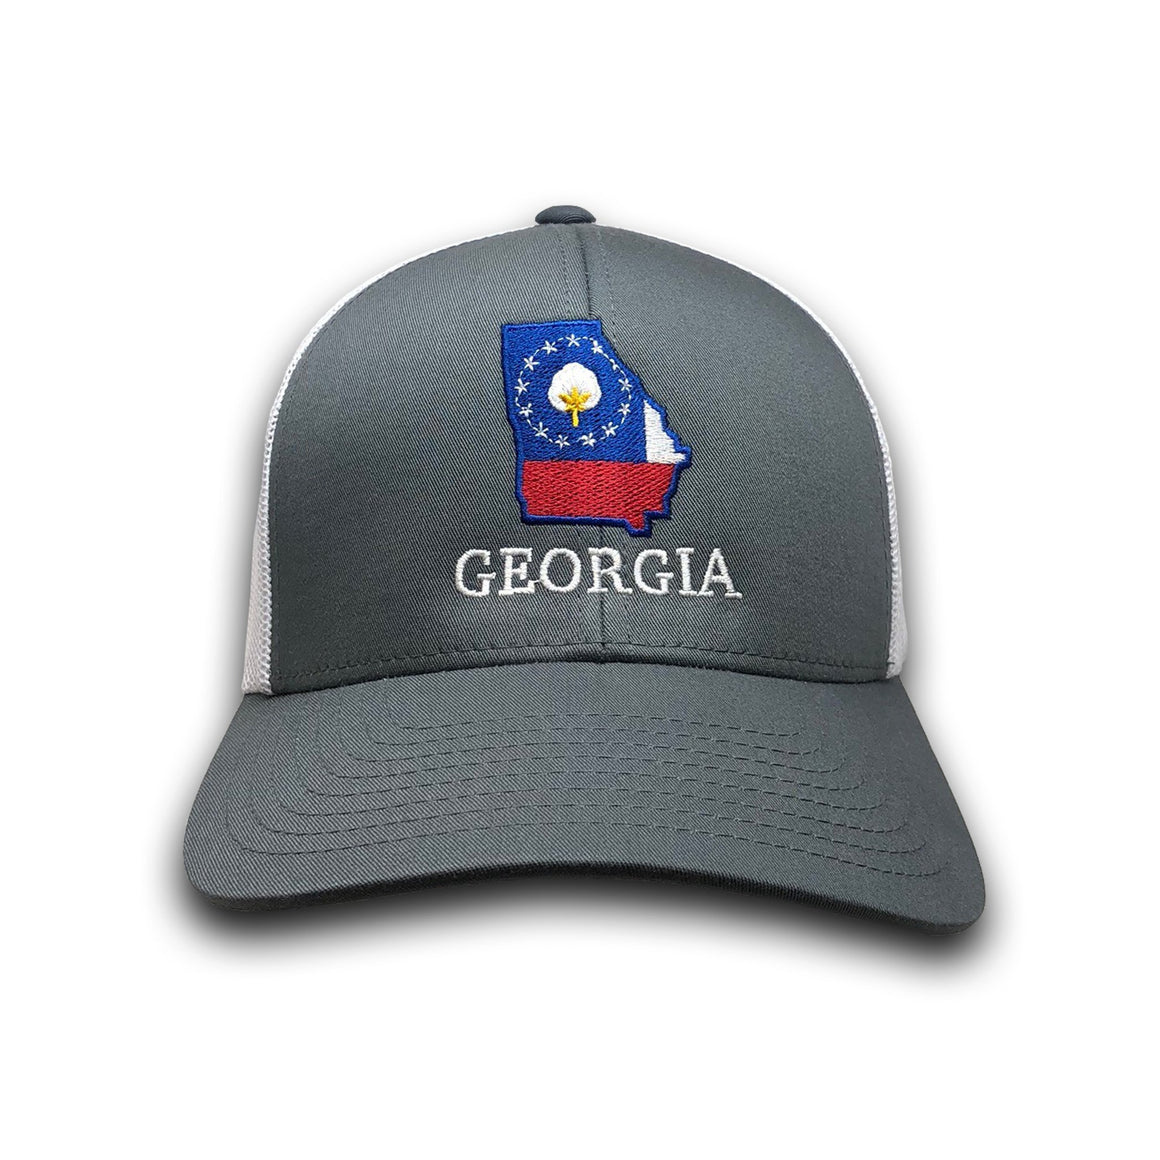 642df2d32d2 Georgia - Georgia Trucker Hats